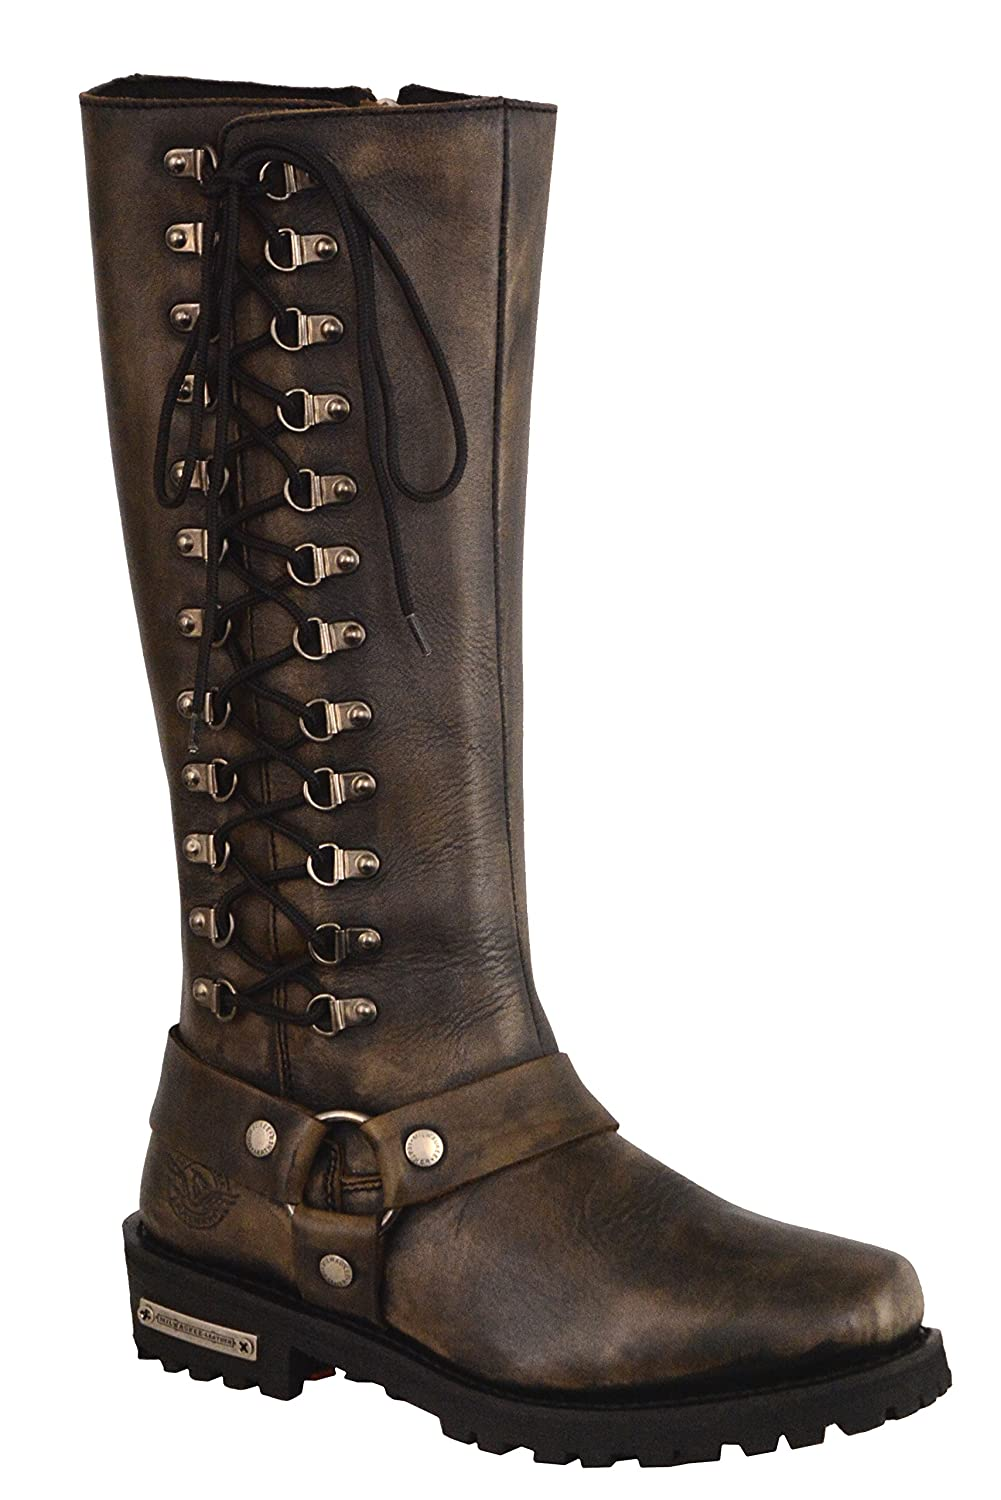 Milwaukee Leather Womens Classic Harness Leather Boots with Full Lacing Black//Beige, Size 9.5//14